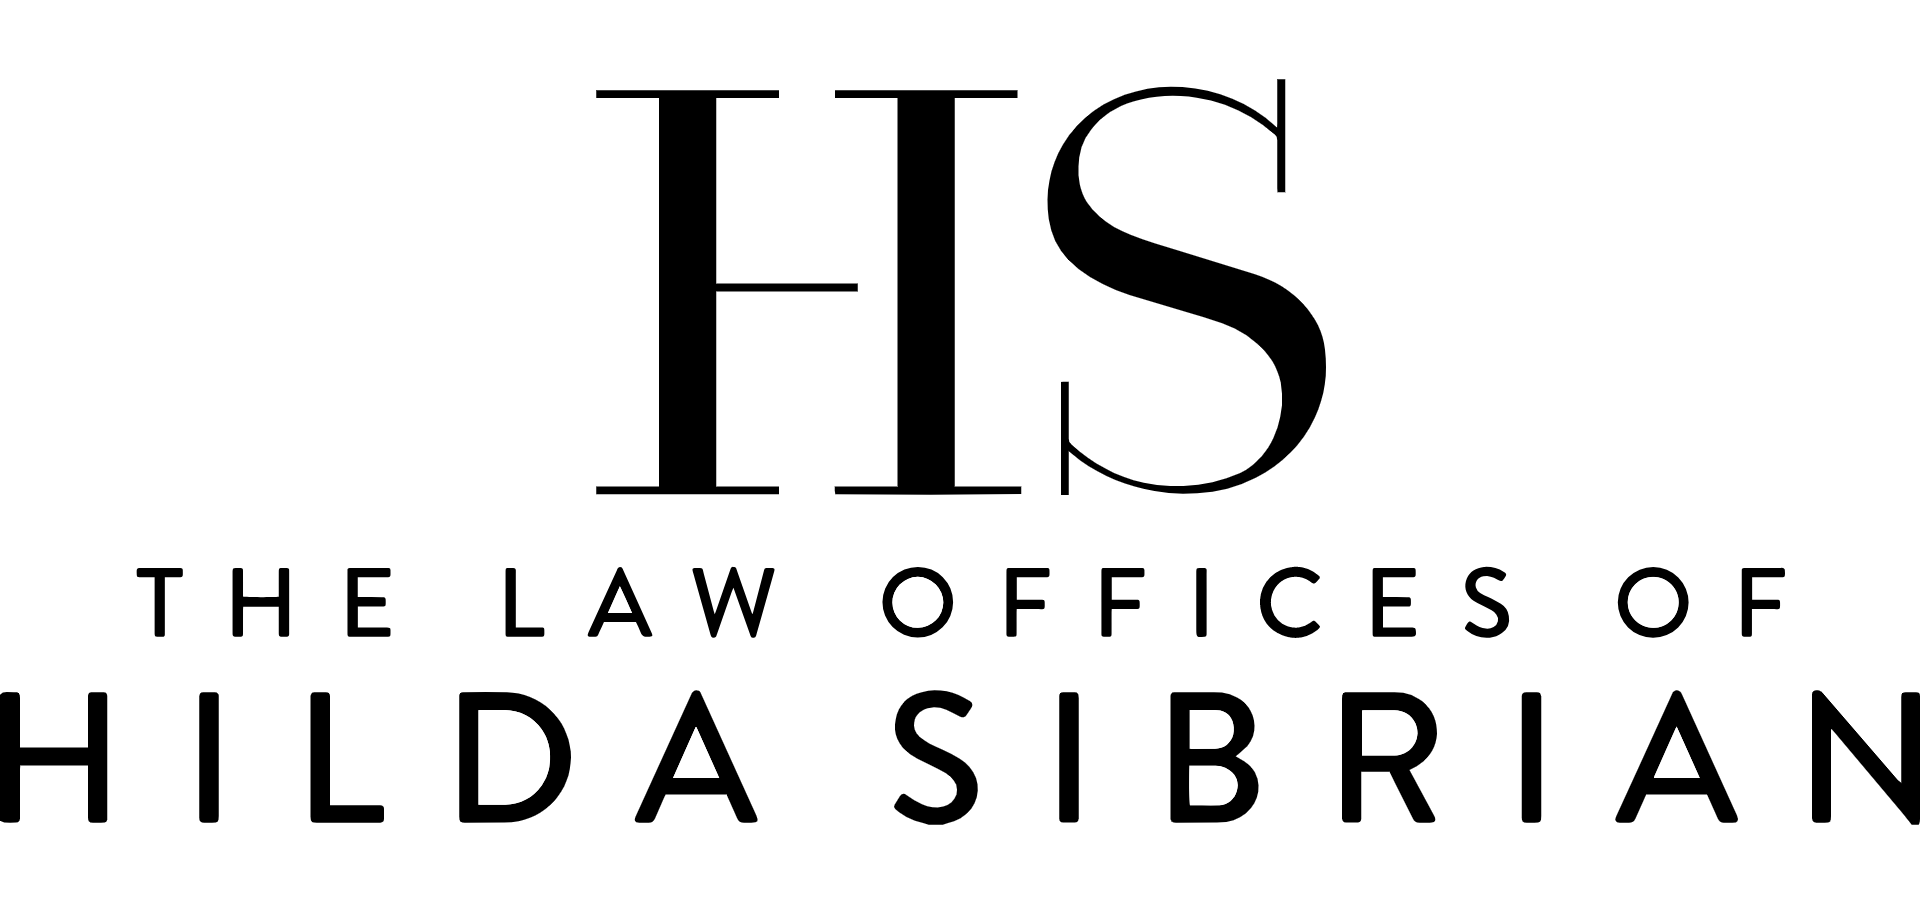 The Law Offices of Hilda Sibrian